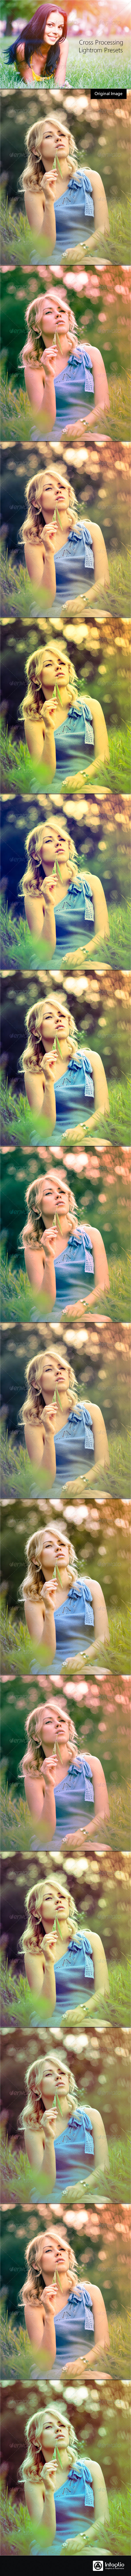 Advanced Cross-Processing Lightroom Presets - Film Lightroom Presets